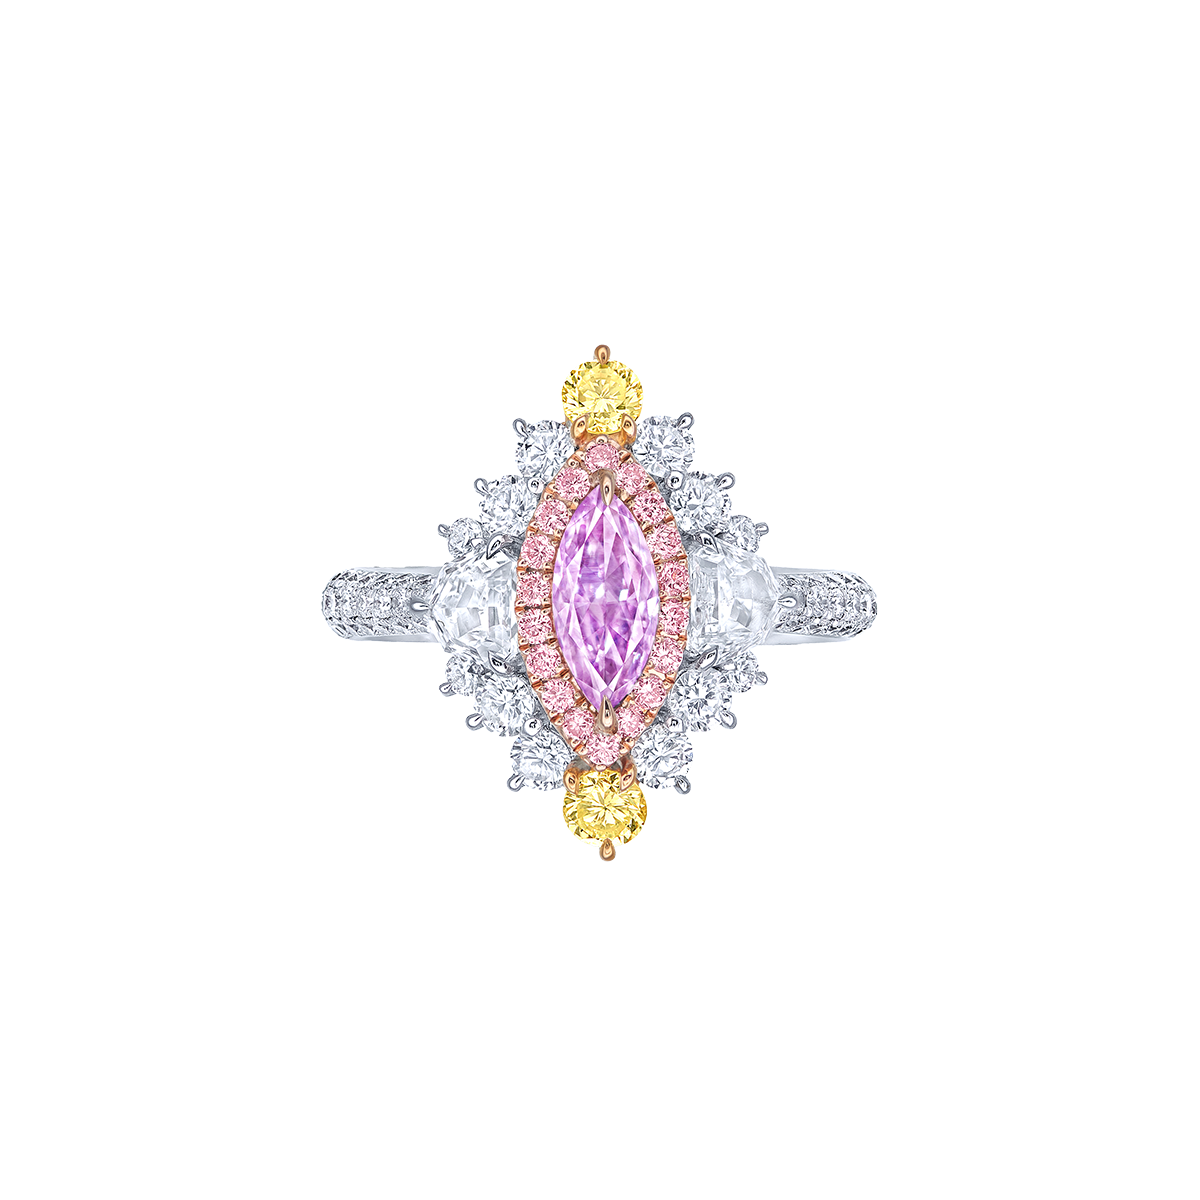 GIA 0.50克拉 ALROSA 粉紫鑽鑽戒